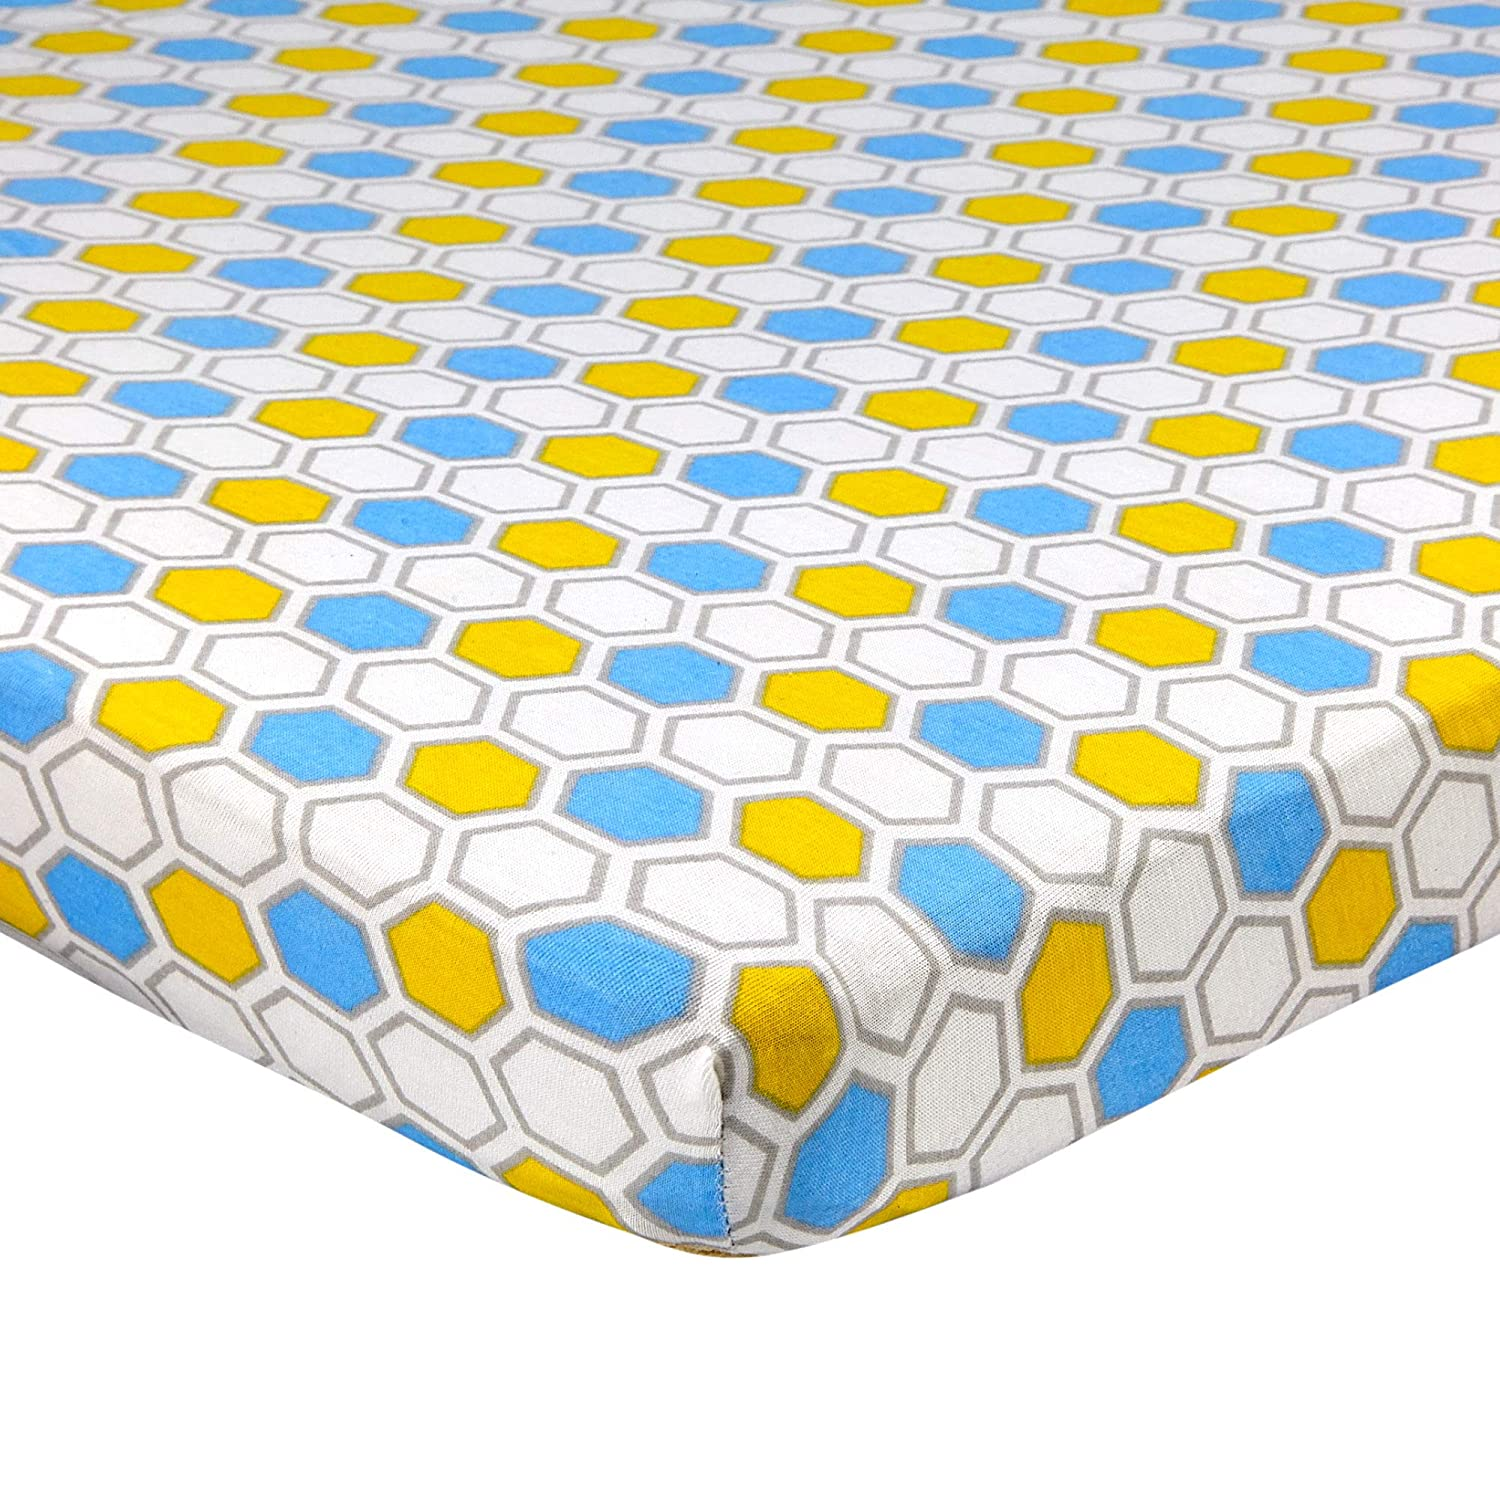 """Abstract Fitted Crib Sheet for Mini and Portable Cribs - 24"""" x 38"""" - Ultra Soft, 100% Jersey Knit Cotton - Hypoallergenic Nursery Bedding - Honeycomb Blue"""